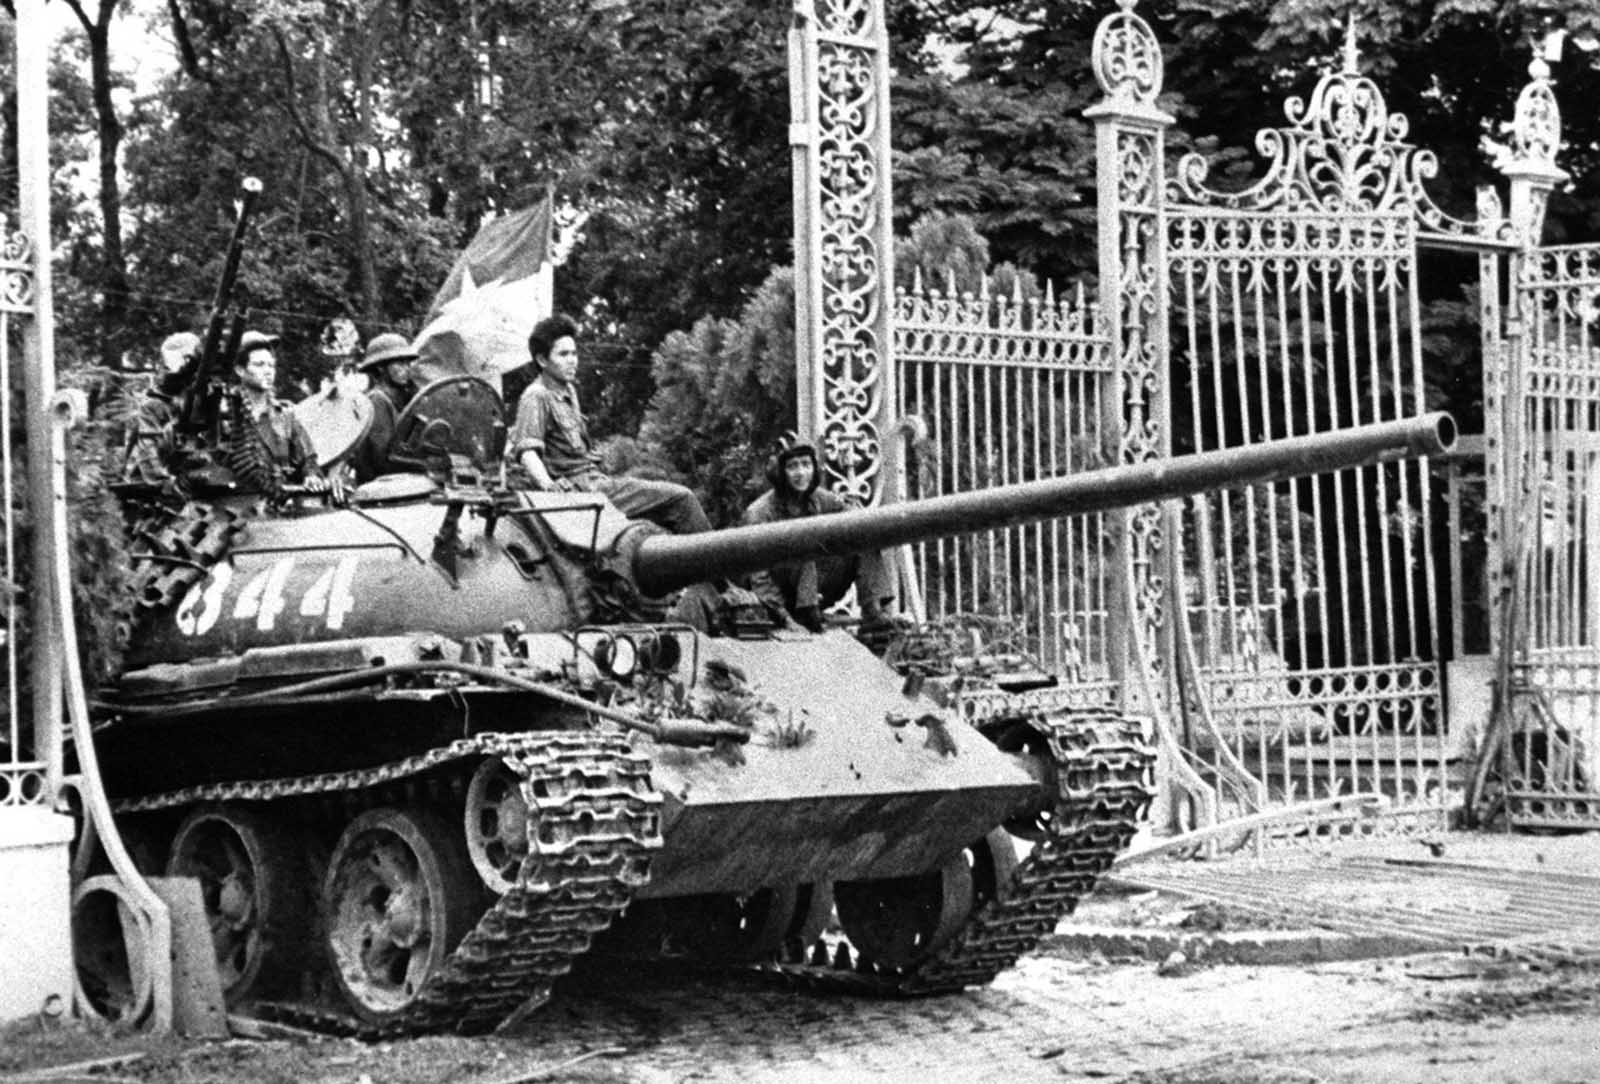 A North Vietnamese tank rolls through the gate of the Presidential Palace in Saigon, April 30, 1975, signifying the fall of South Vietnam. The Socialist Republic of Vietnam was formed in 1976, uniting North and South. Millions of South Vietnamese were sent to reeducation camps, millions more fled the country on their own, leading to the Indochina refugee crisis that lasted another quarter of a century.